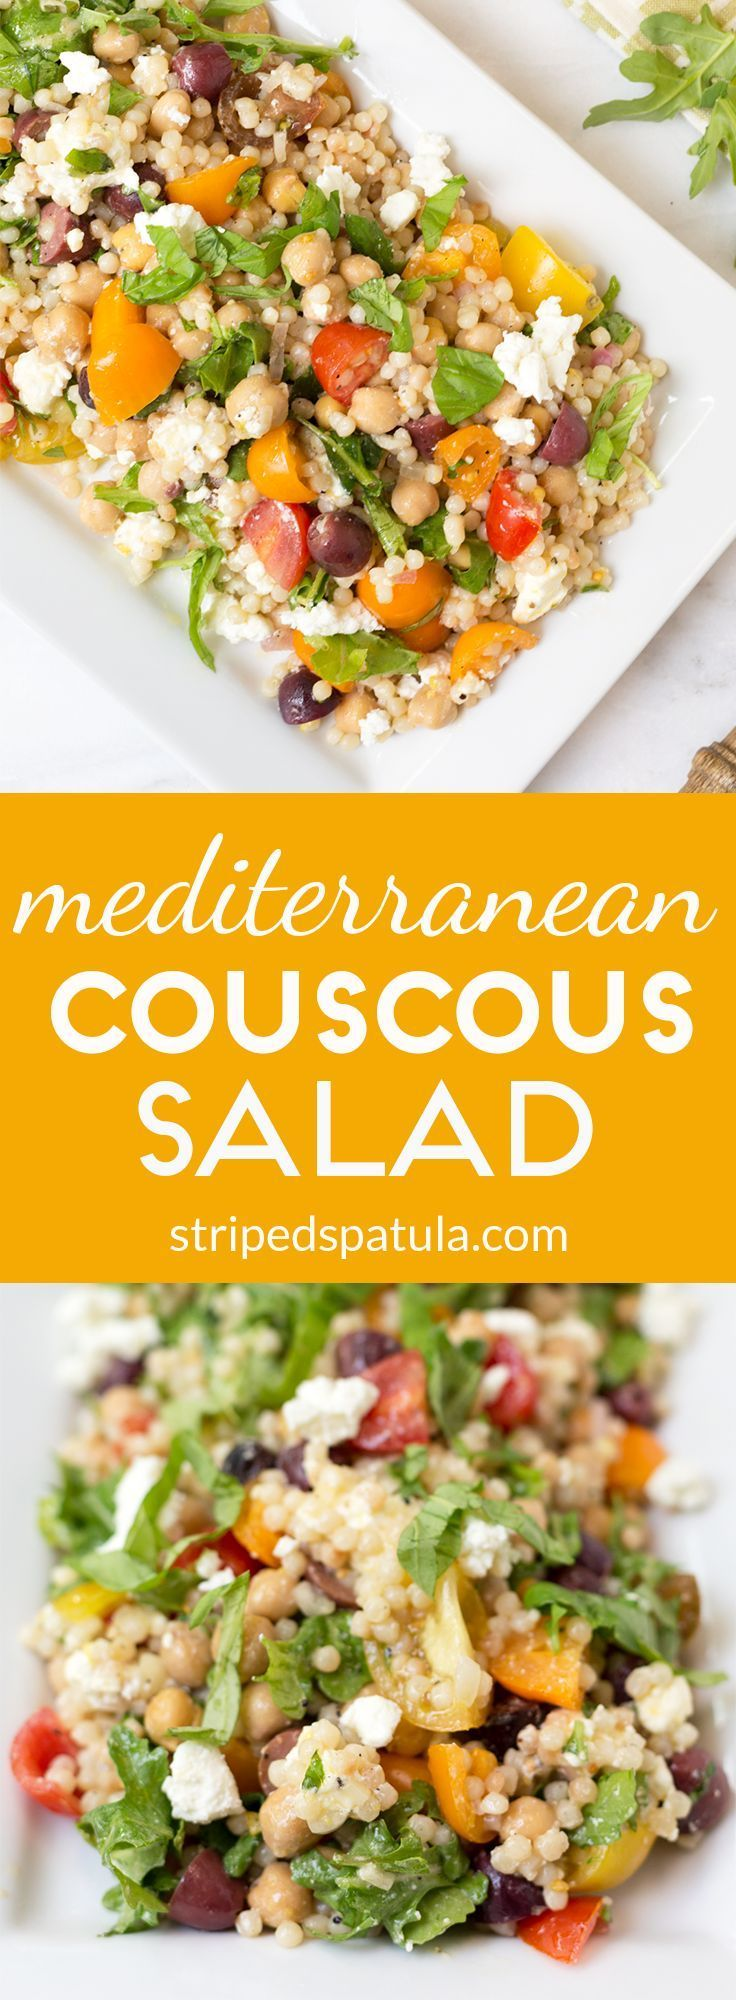 This couscous salad is a bright and fresh side dish or meatless main dish that's perfect for a weeknight dinner or easy summer entertaining! #contest